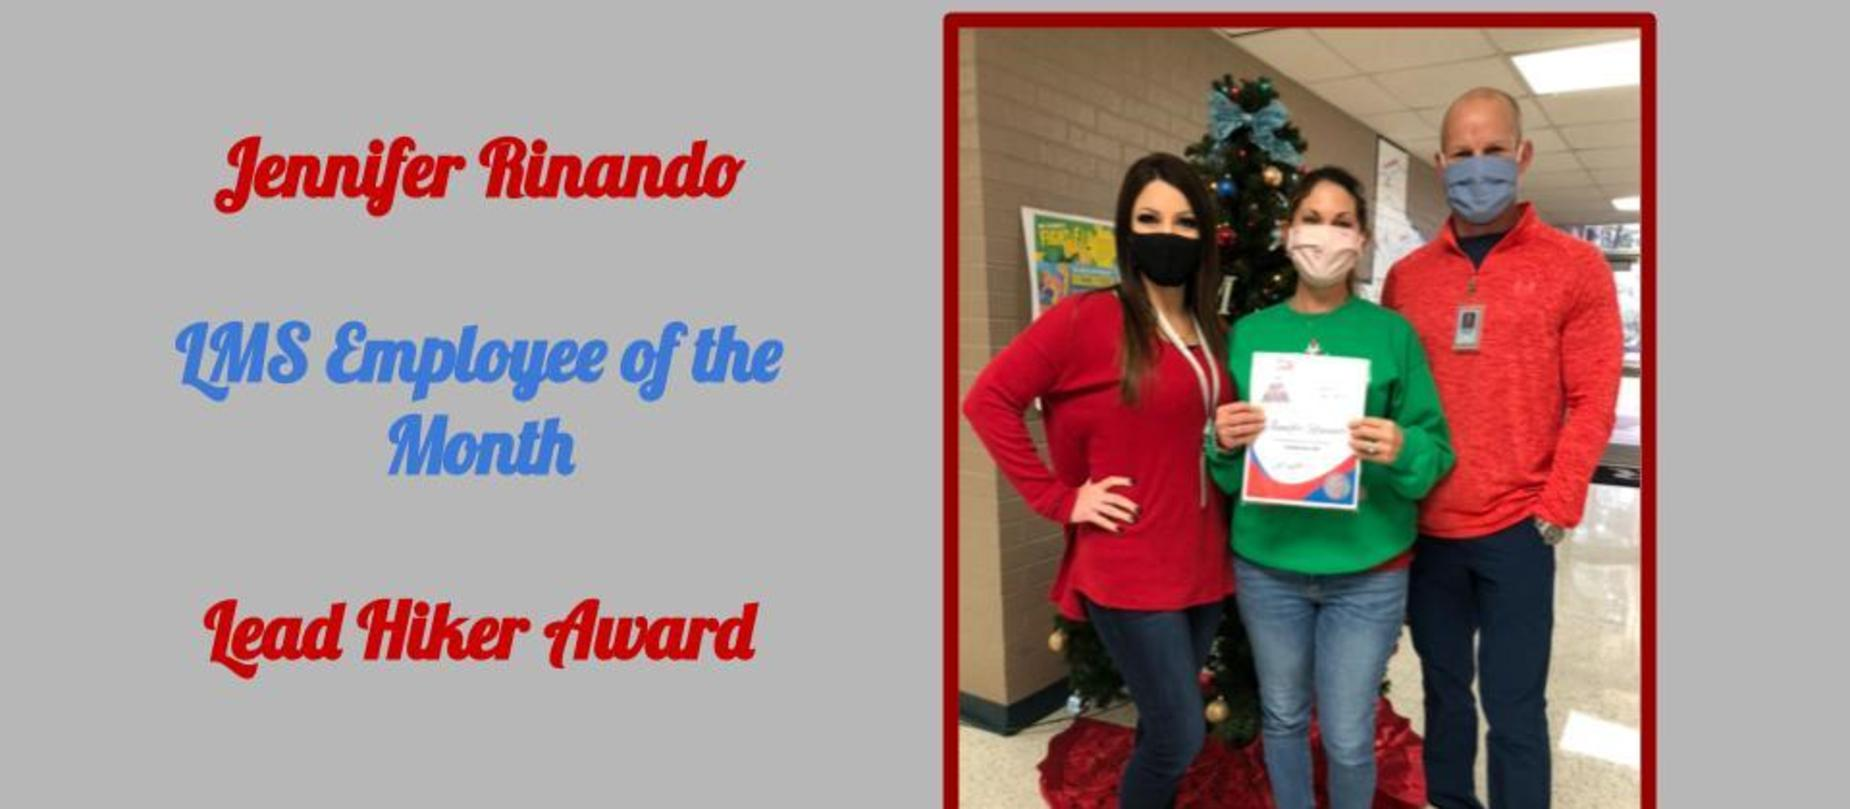 Employee of the Month Jennifer Rinando